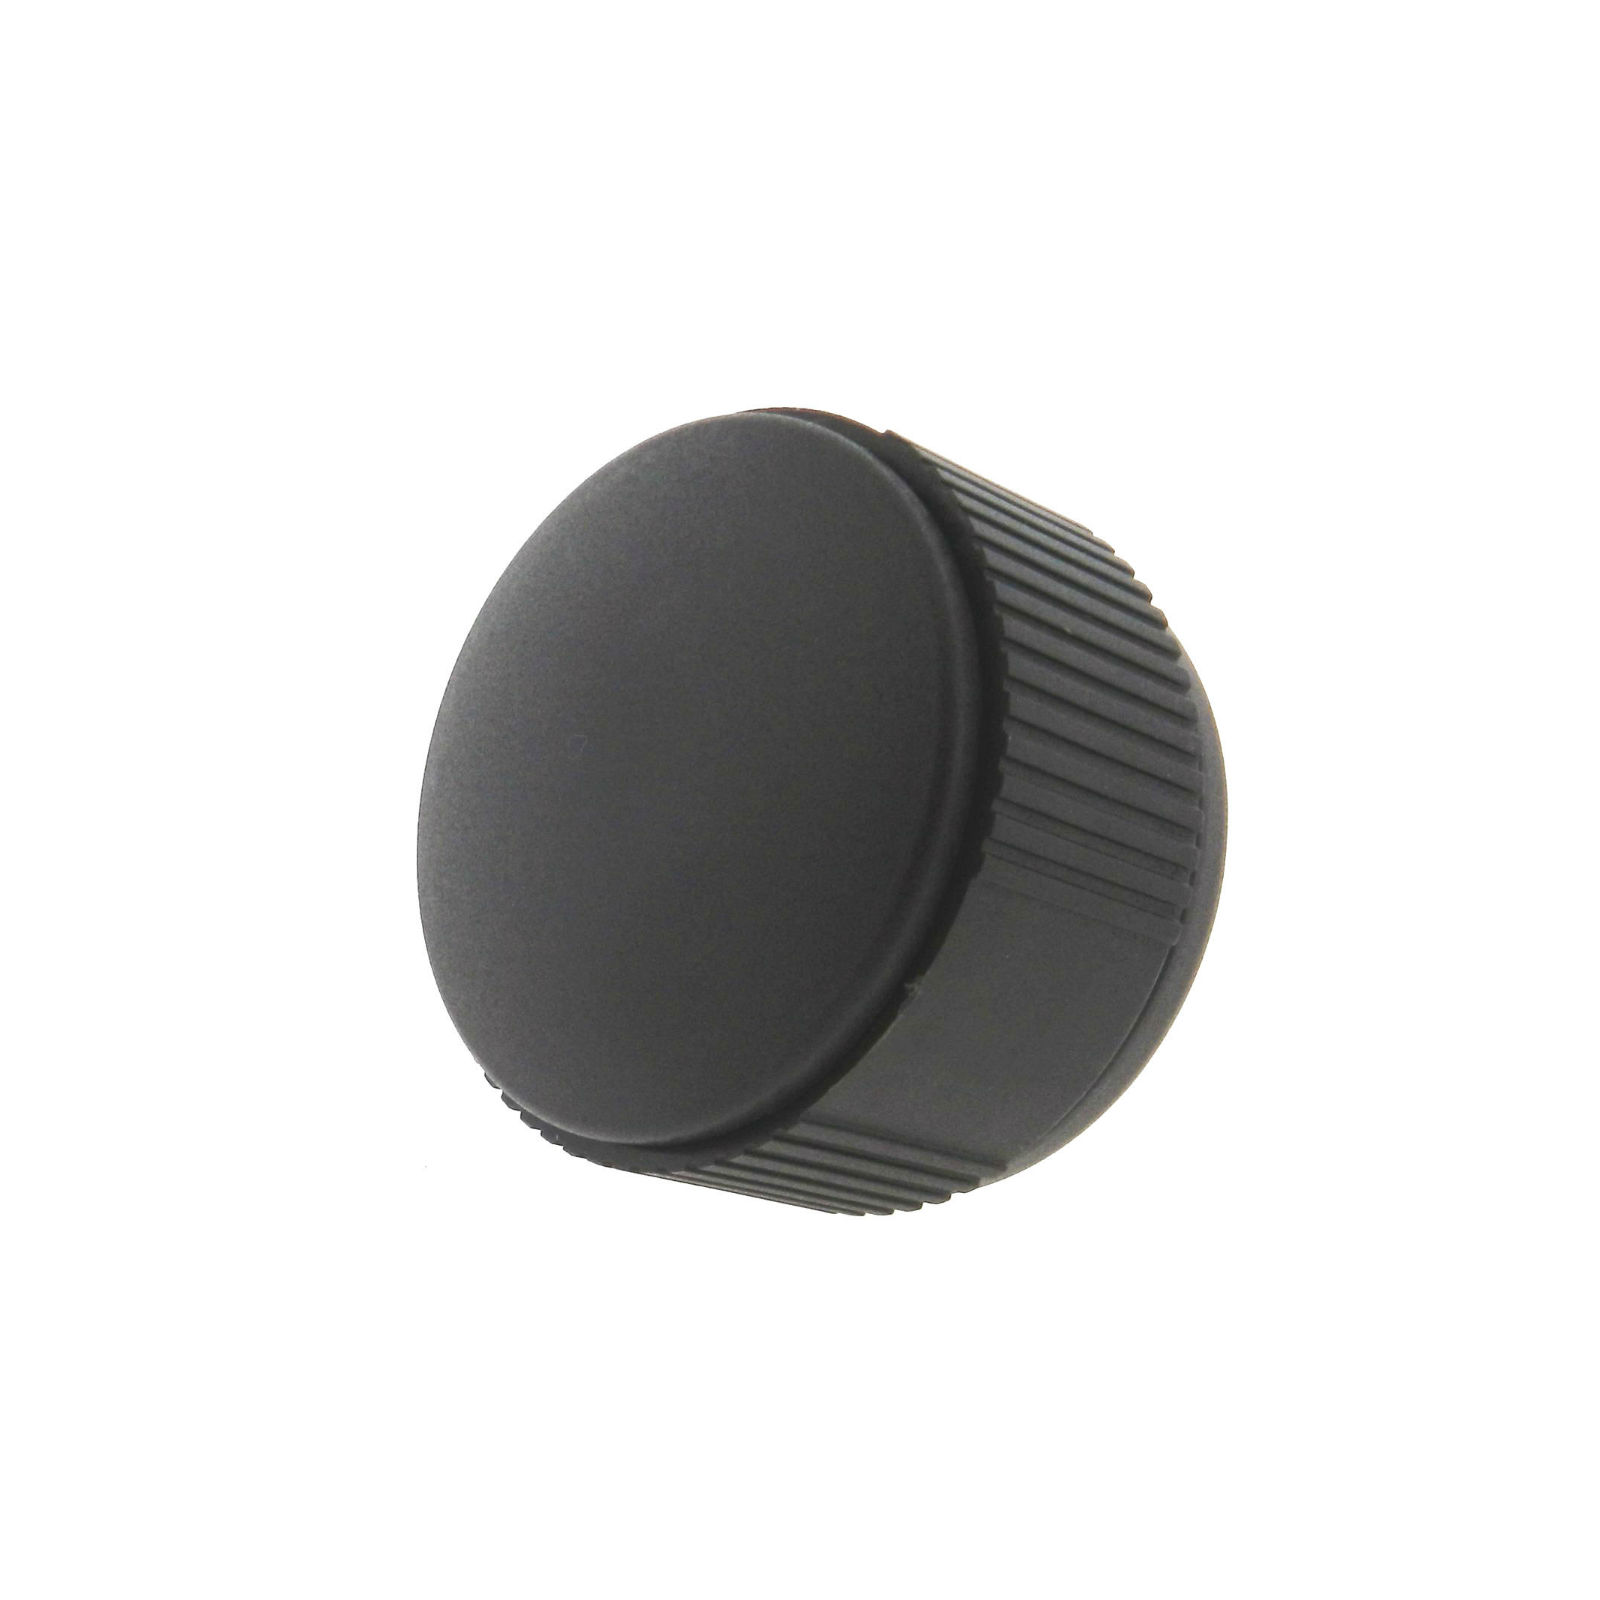 A thermoplastic knurled knob with a tapped hole